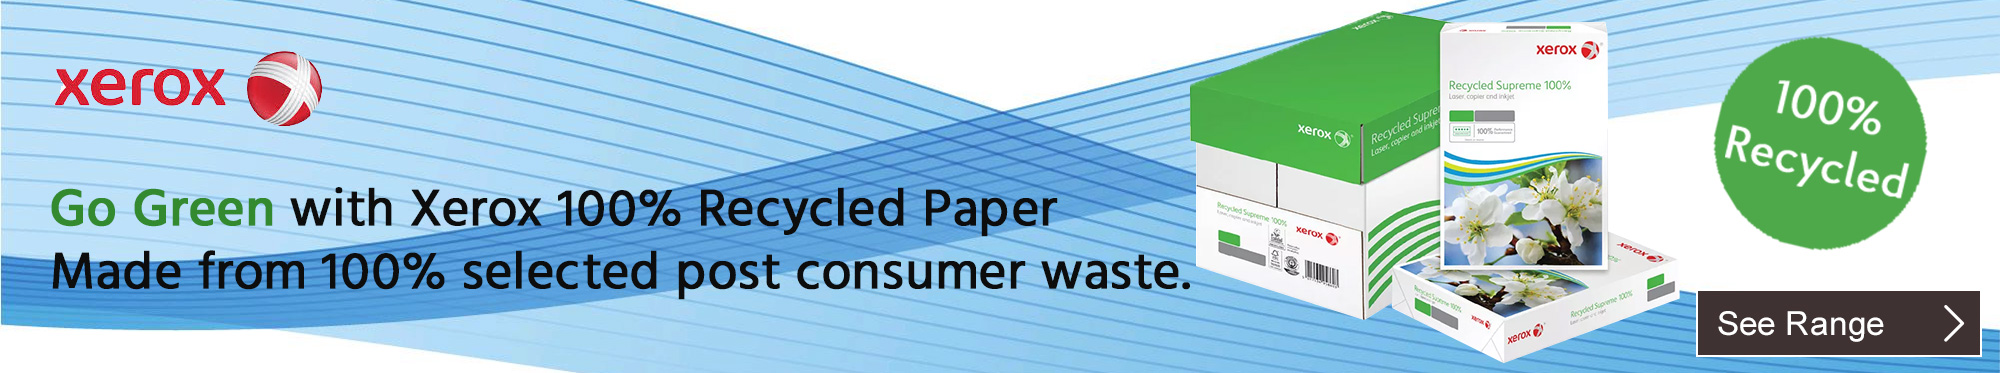 Go Green with Xerox 100% Recycled Paper